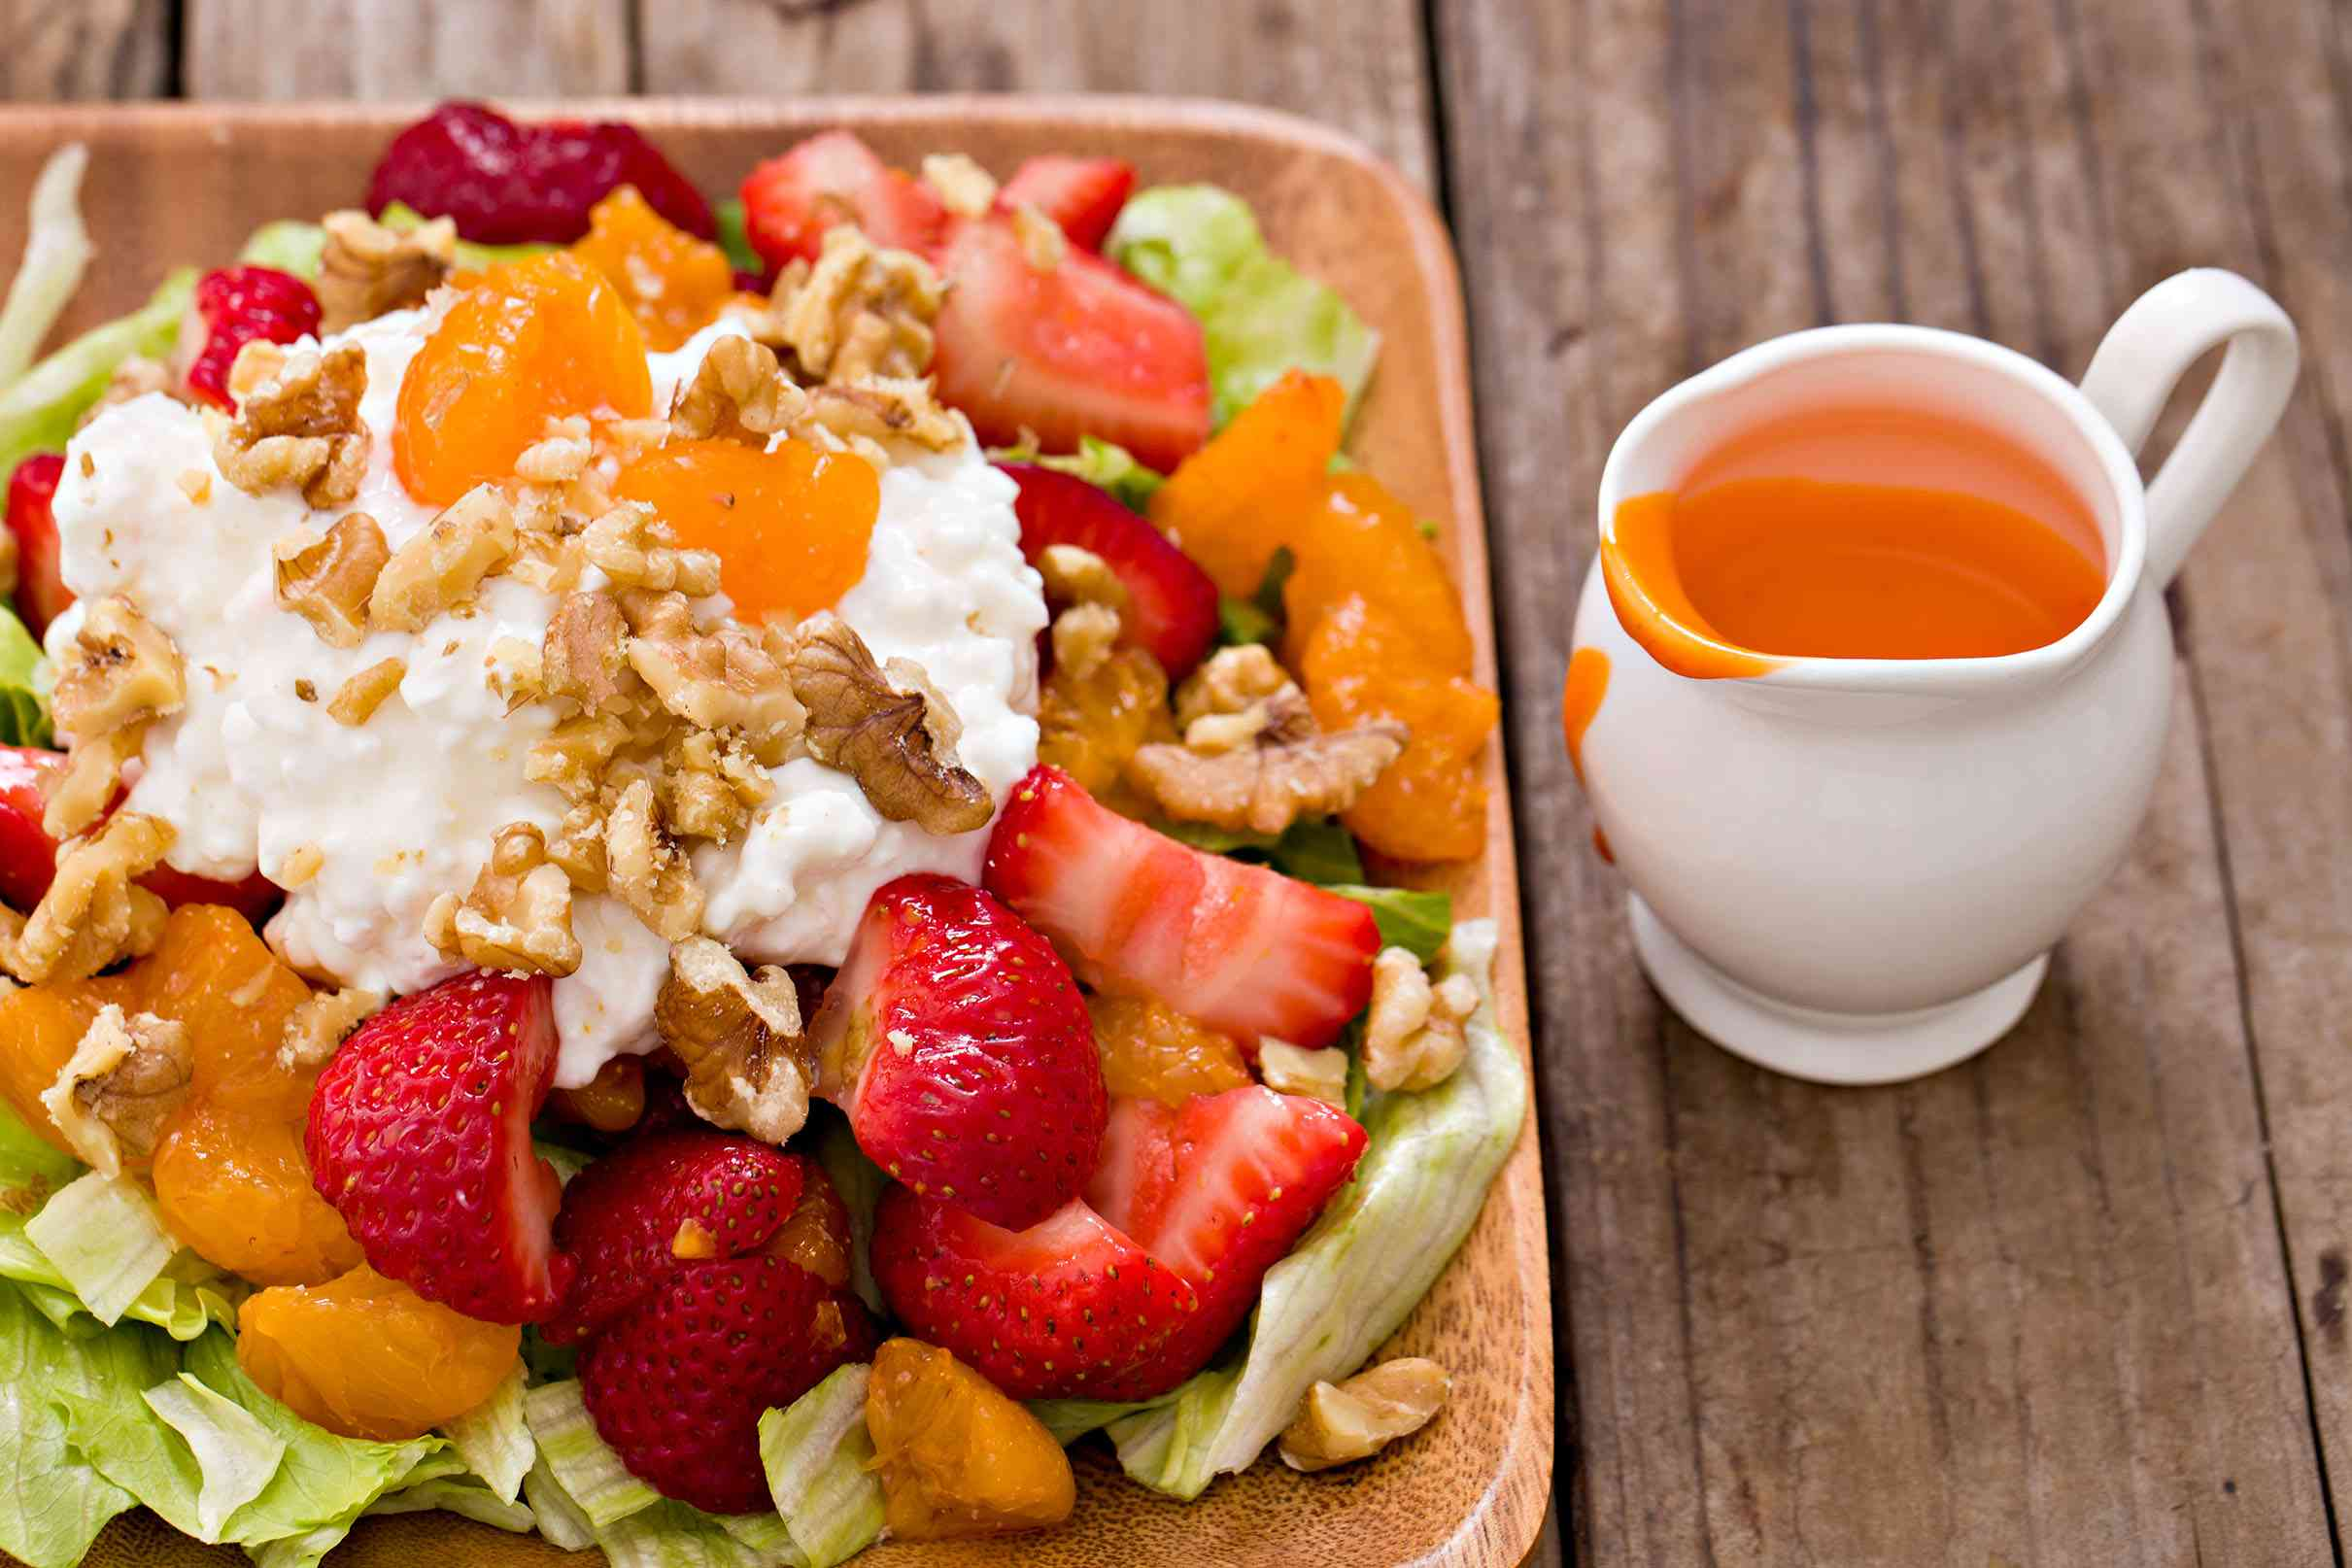 French salad dressing with salad